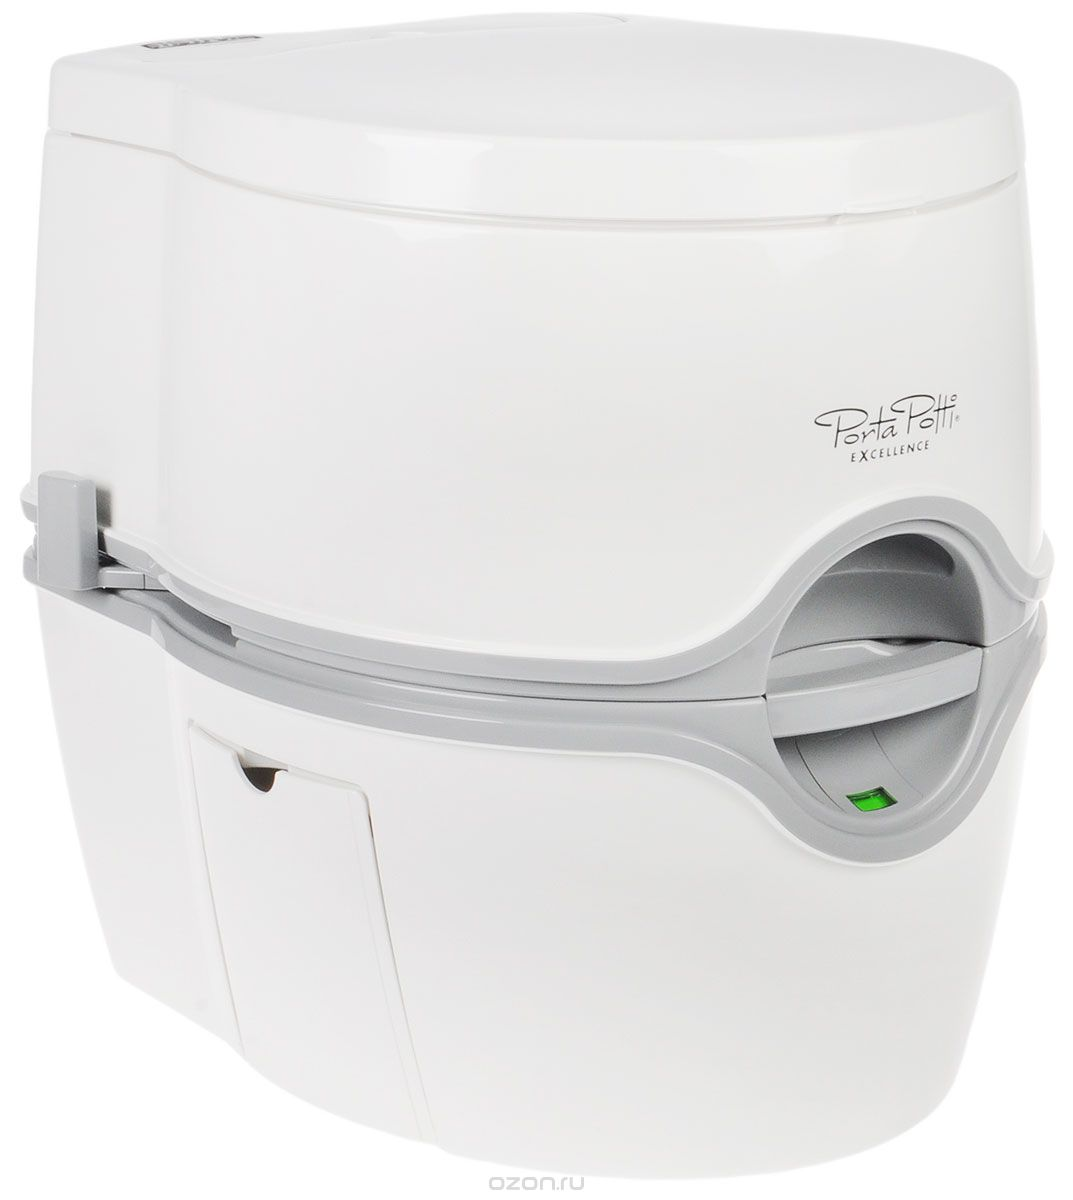 Биотуалет Thetford Porta Potti Excellence Electric , цвет: белый